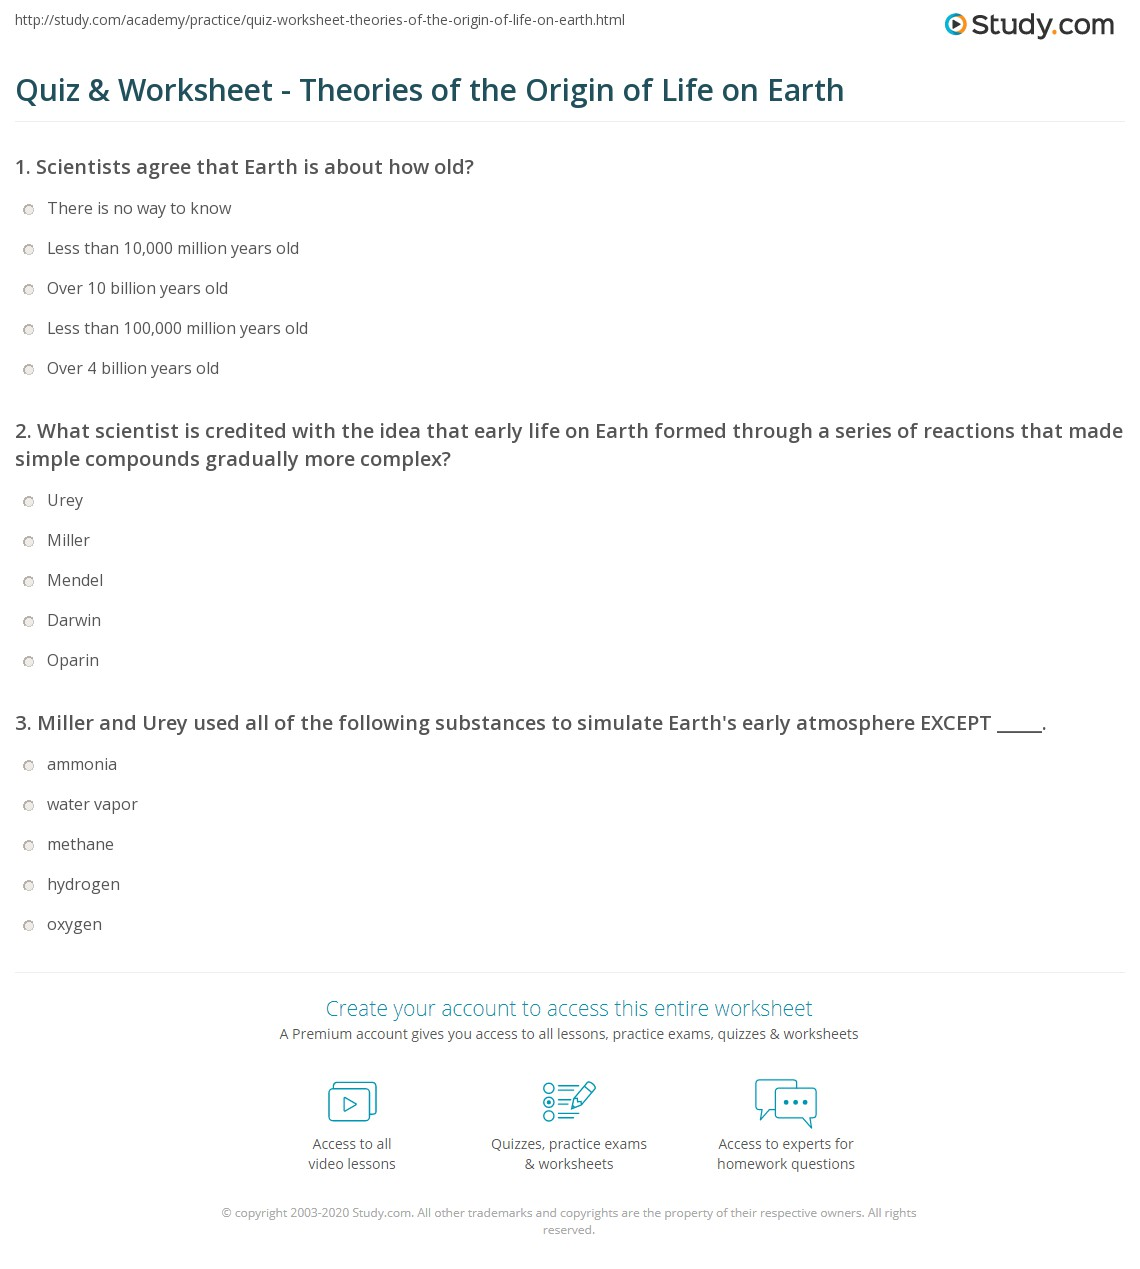 Quiz & Worksheet - Theories of the Origin of Life on Earth | Study.com